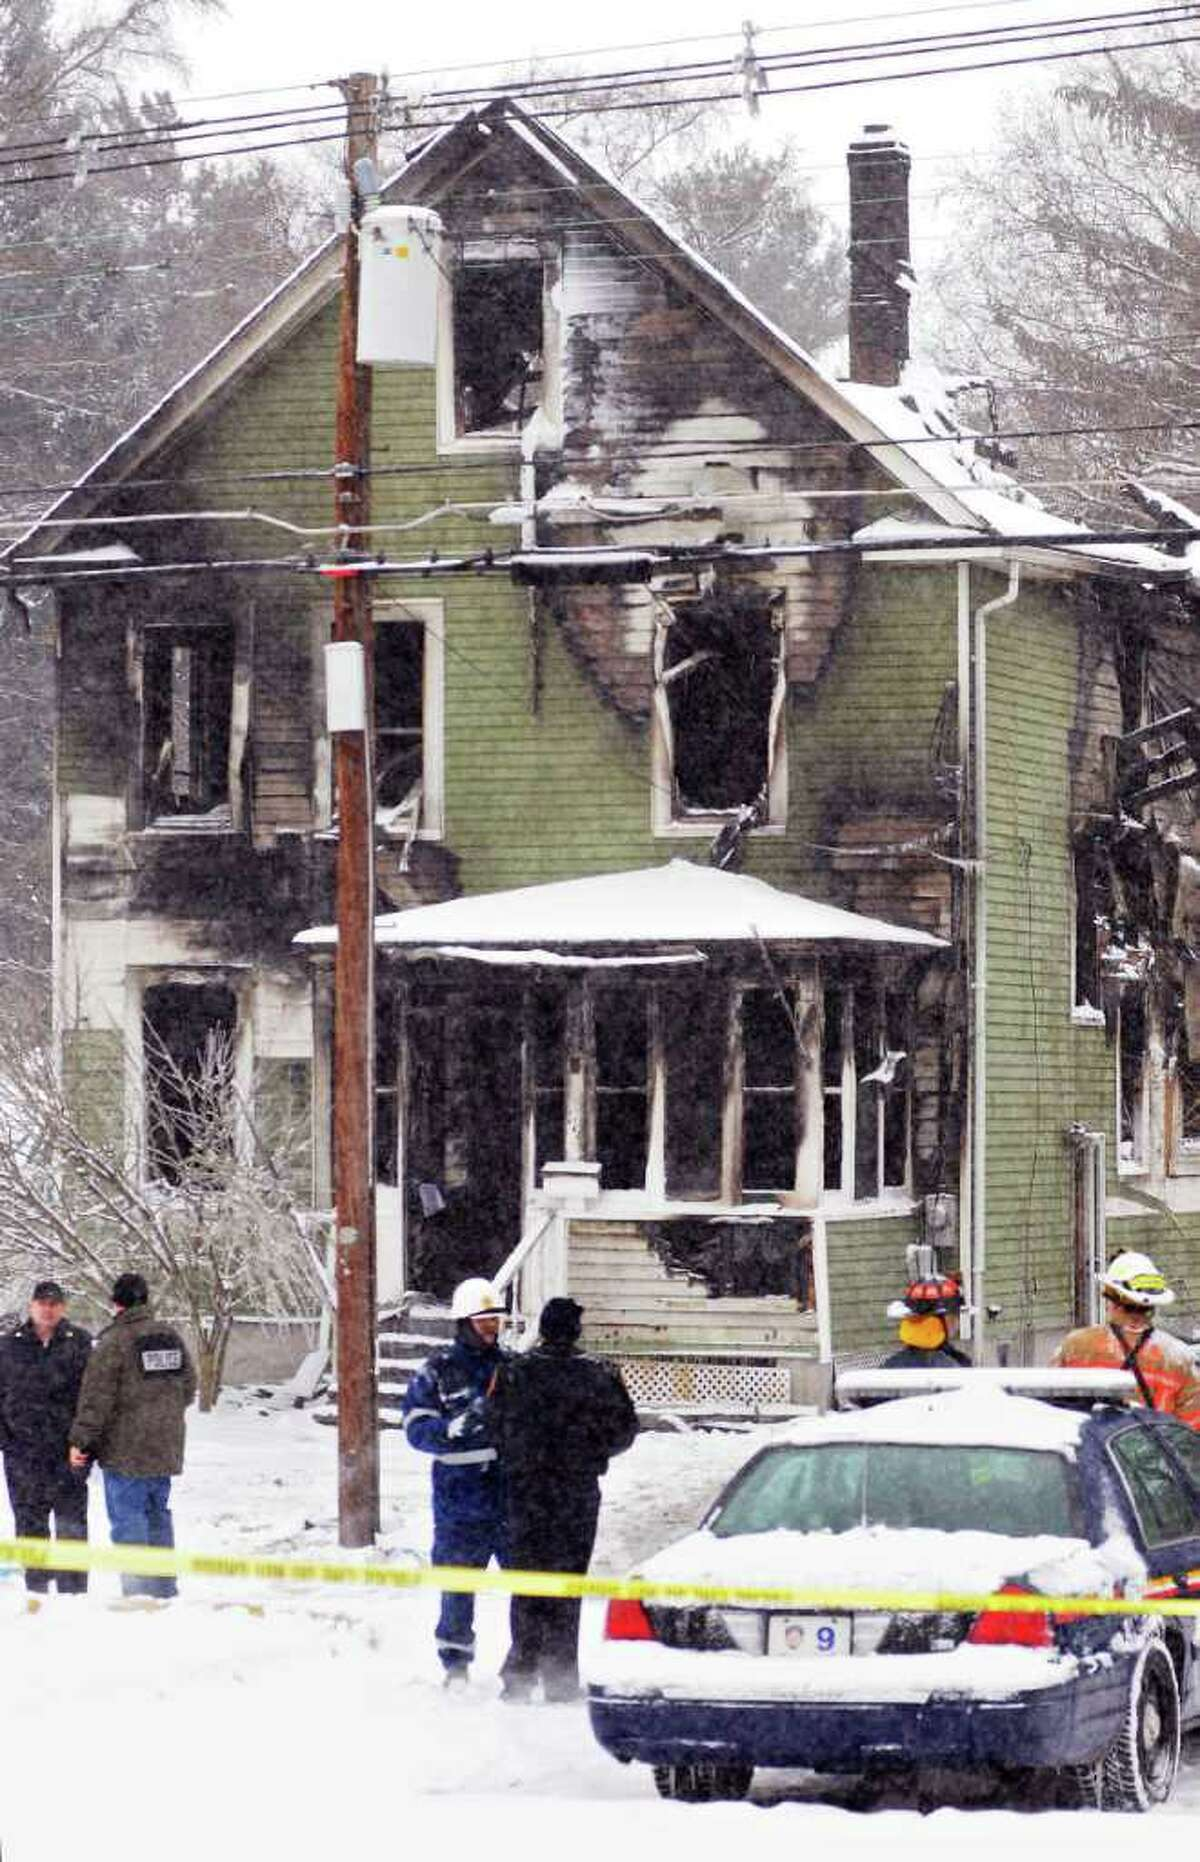 Darryl Bautista/Poughkeepsie Journal Town of Poughkeepsie Poilce and the Fairview Fire Department with other authorities at 112 Fairview Ave. in the Town of Poughkeepsie on Saturday, Jan. 21, 2012. Three people killed by the fire that tore through a private home being rented by Marist College students near campus. Kevin Johnson, 20, who graduated from New Canaan High School, was identified by friends as one of the victims of the fire. Johnson was not a Marist student. Eva Block, a 21-year-old Marist College student from Woodbridge, died of smoke inhalation, Poughkeepsie police told the Poughkeepsie Journal. The third victim was identified by the Journal as Marist student Kerry Fitzsimons, of Commack, N.Y